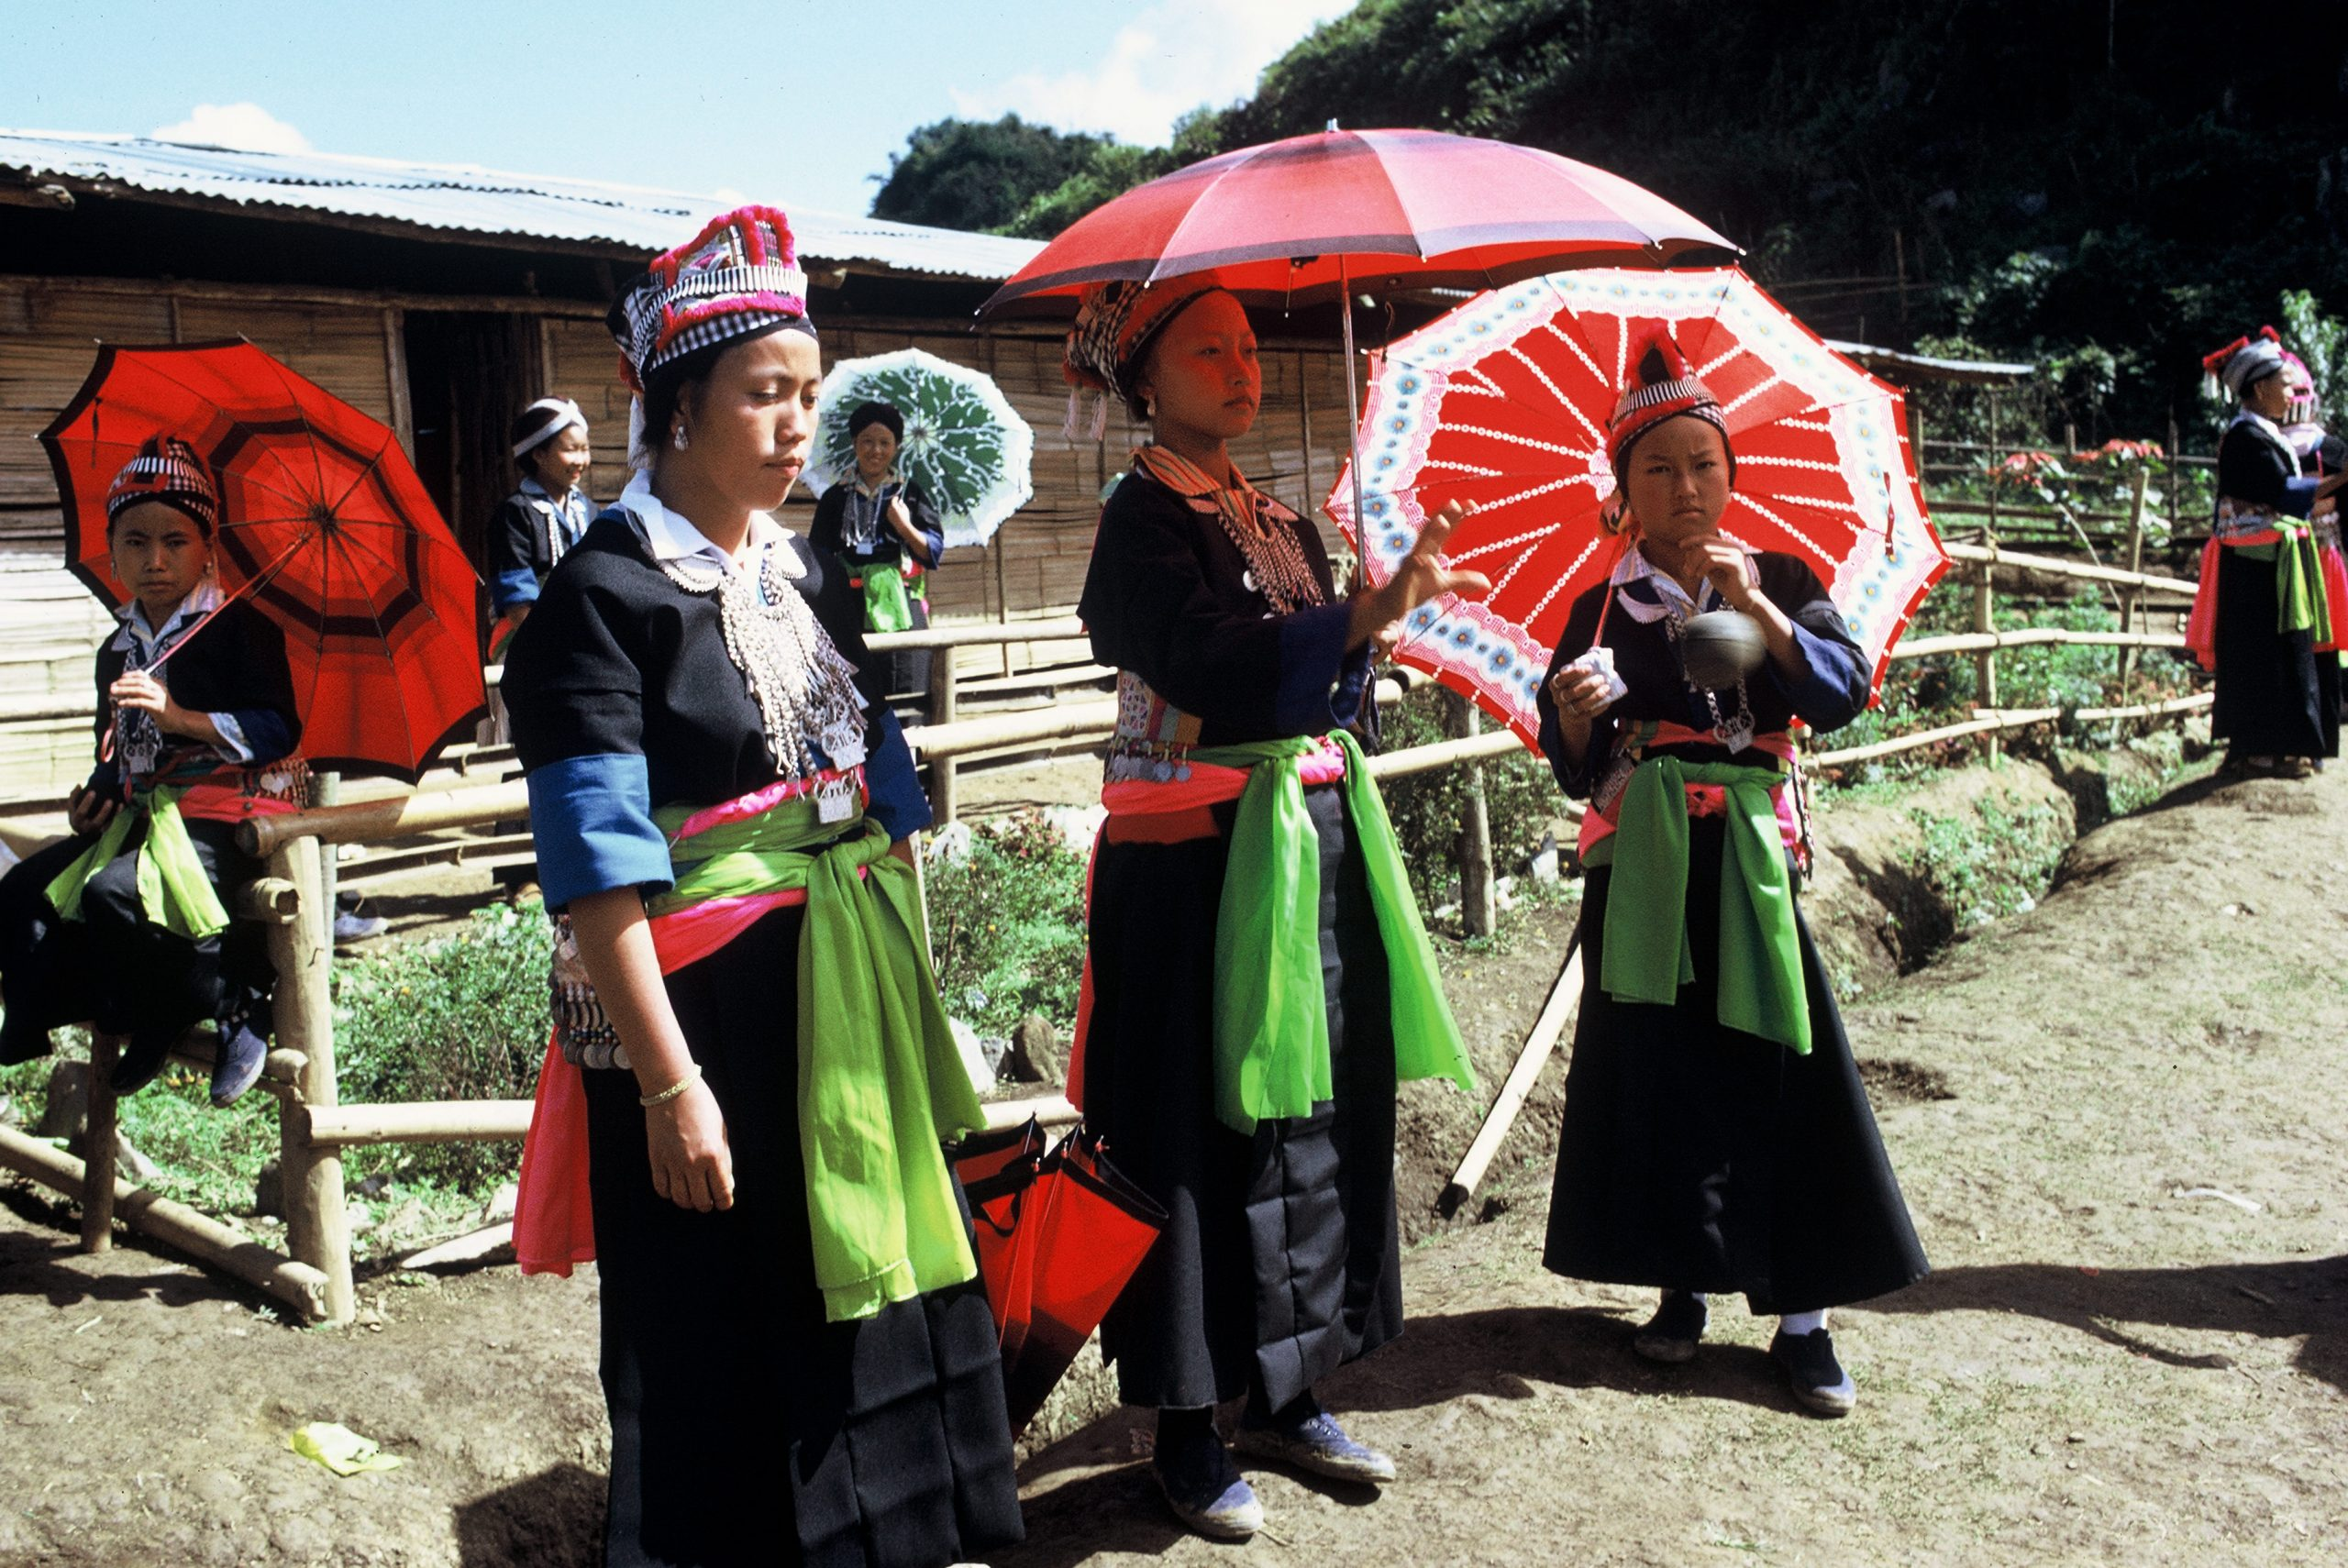 A Hmong New Year celebration in Laos